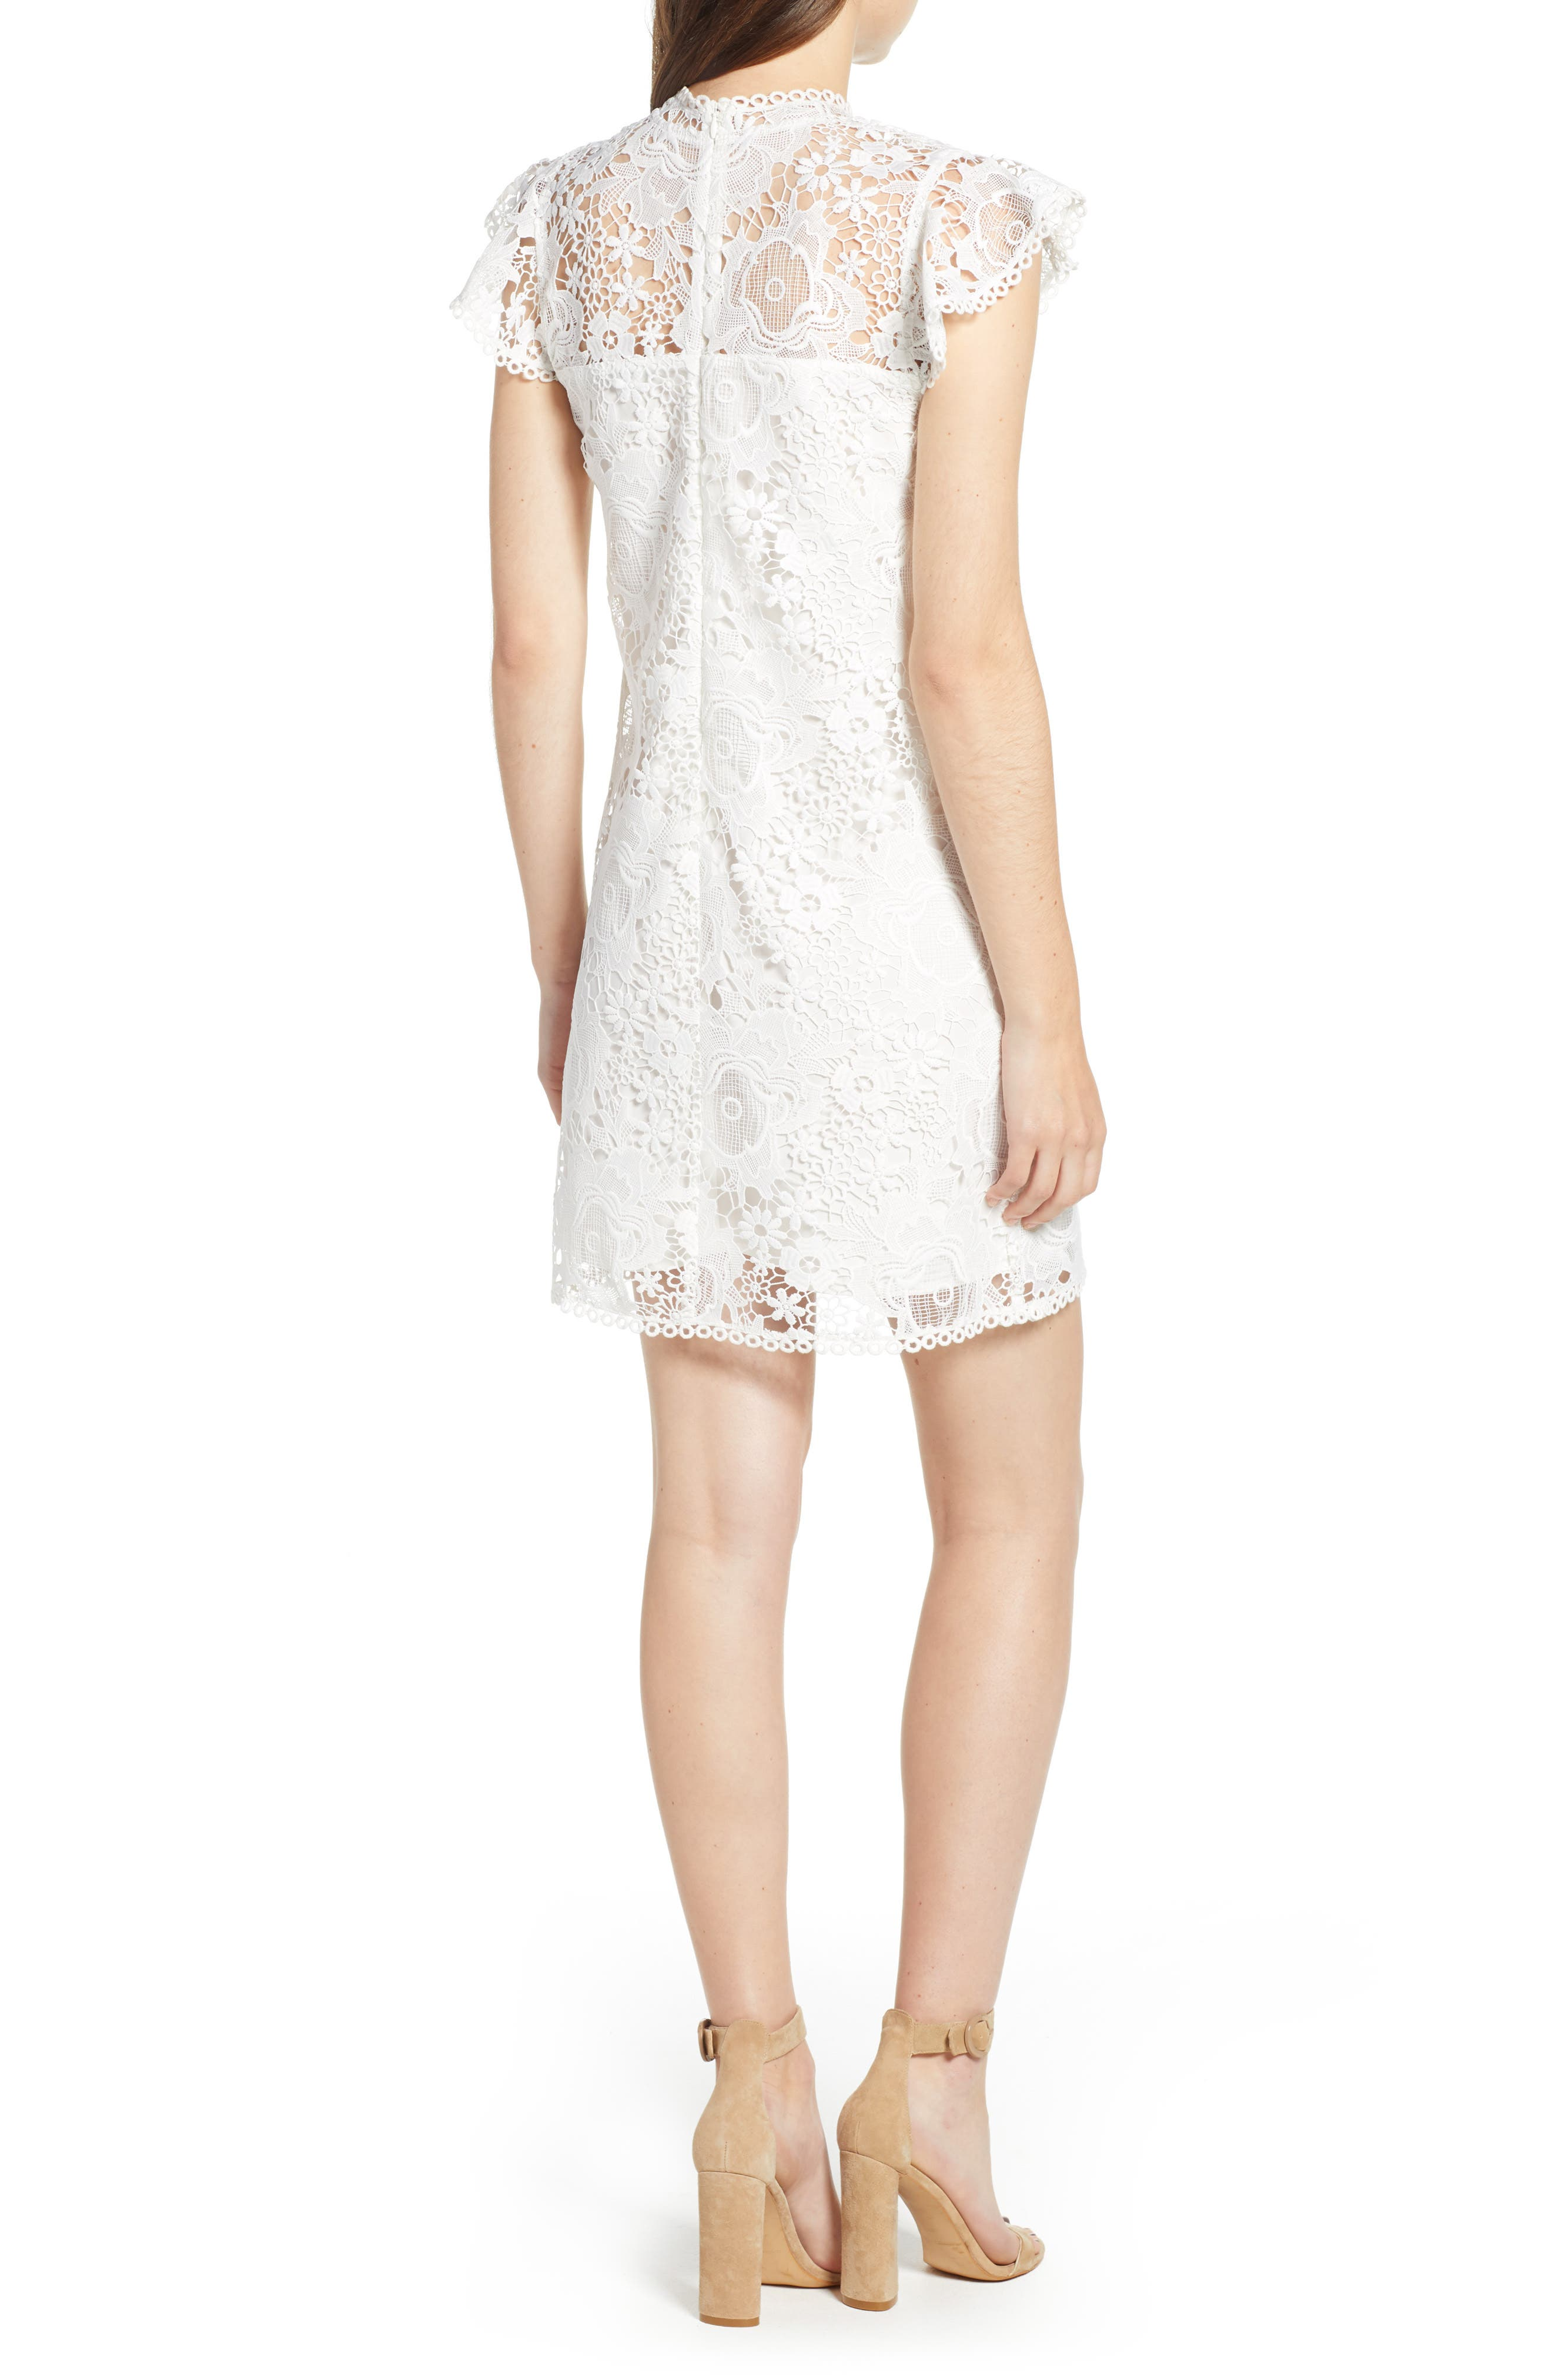 CUPCAKES AND CASHMERE, Floral Lace Shift Dress, Alternate thumbnail 2, color, WHITE